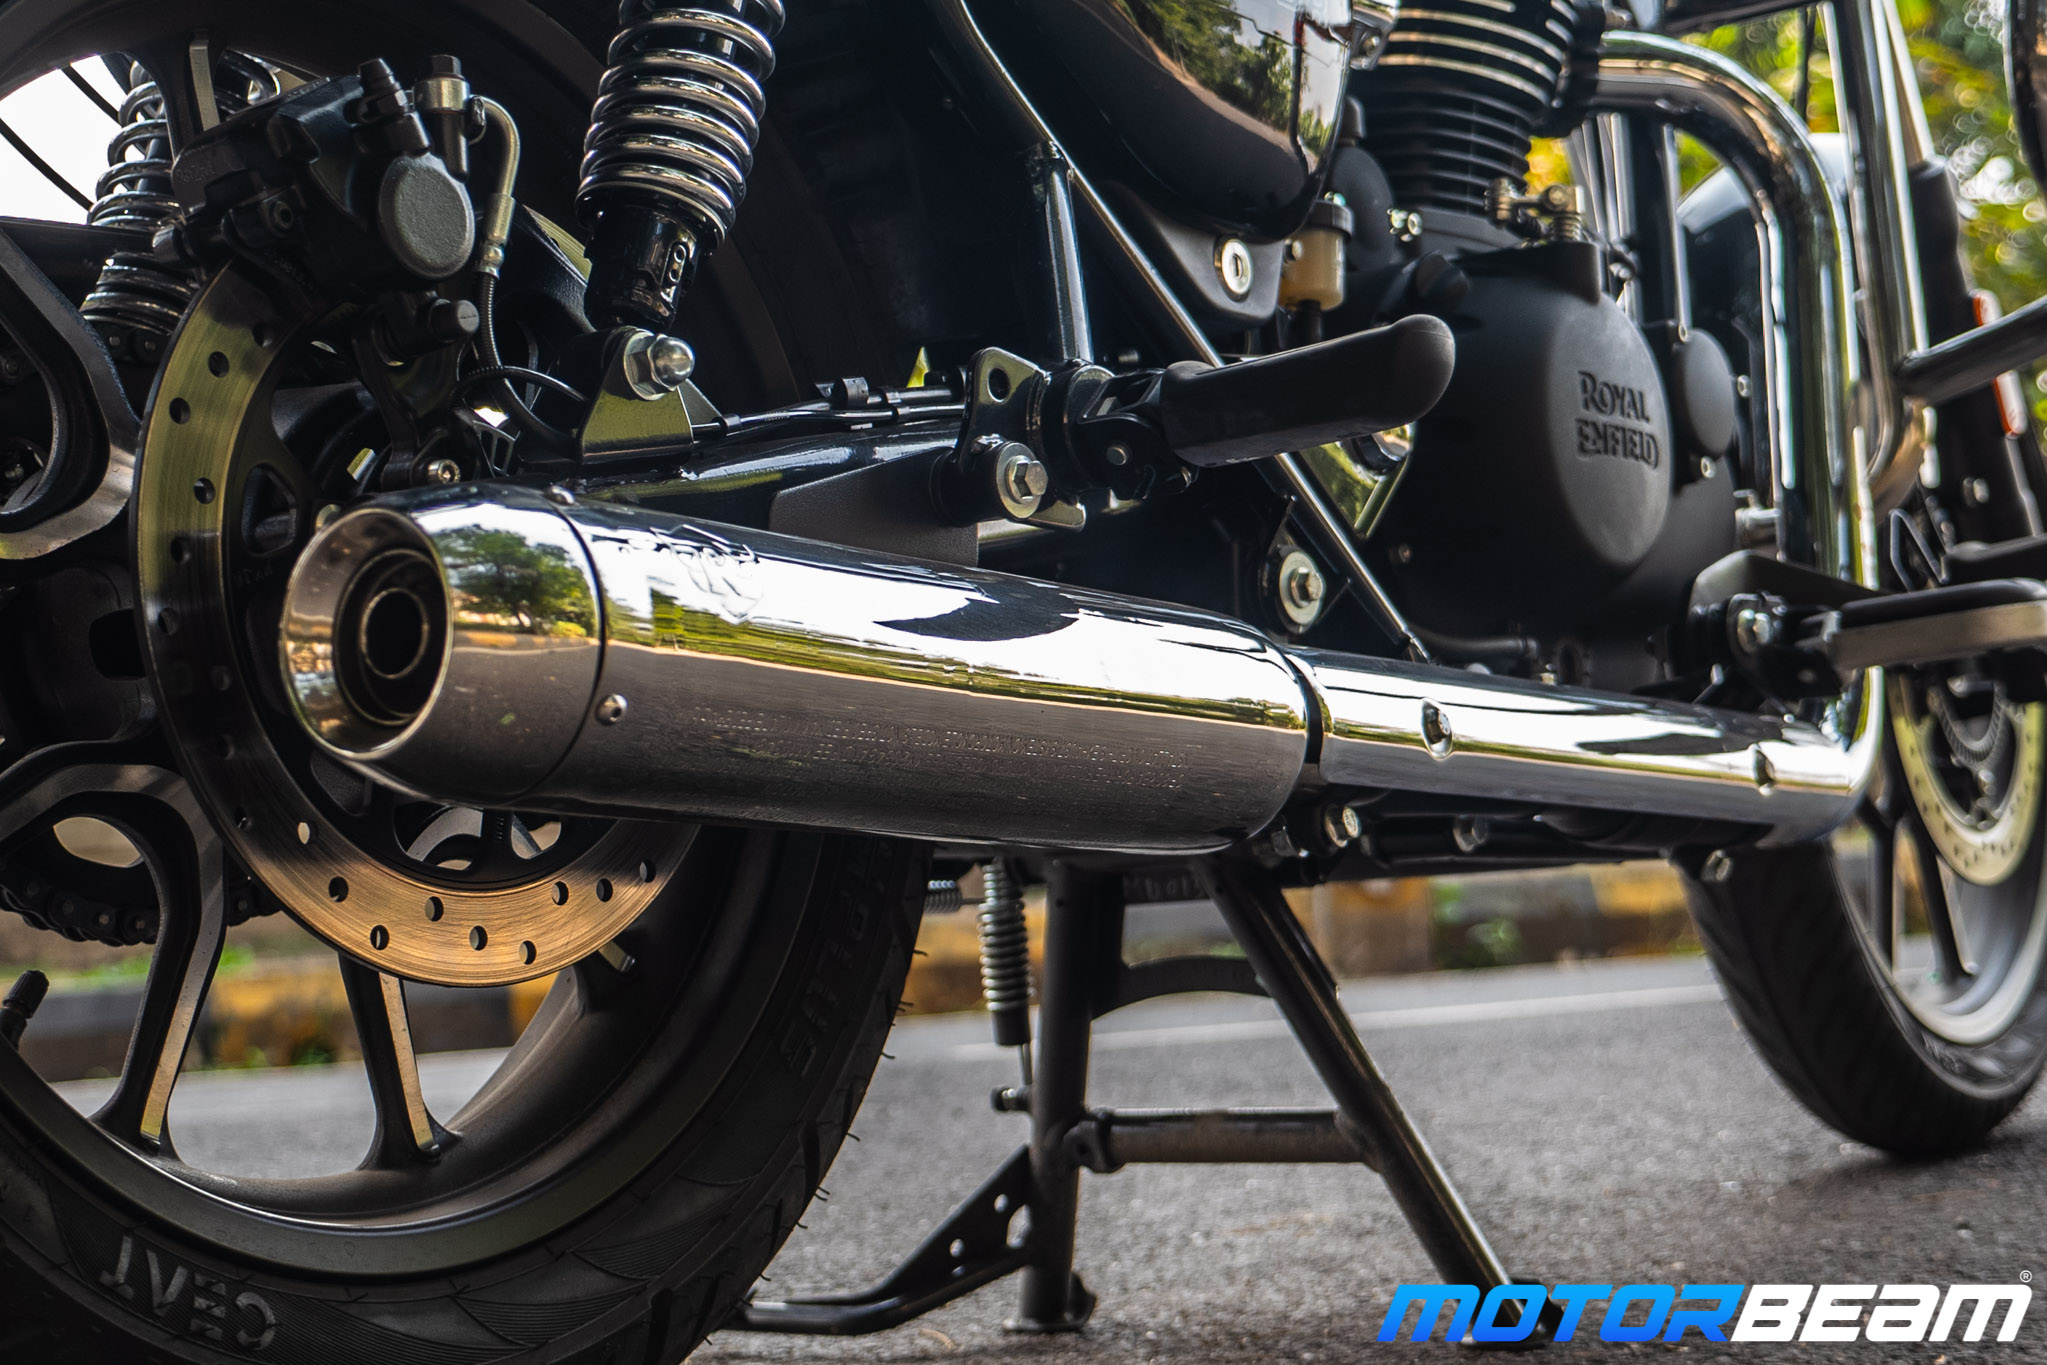 Royal Enfield Meteor 350 Review 24